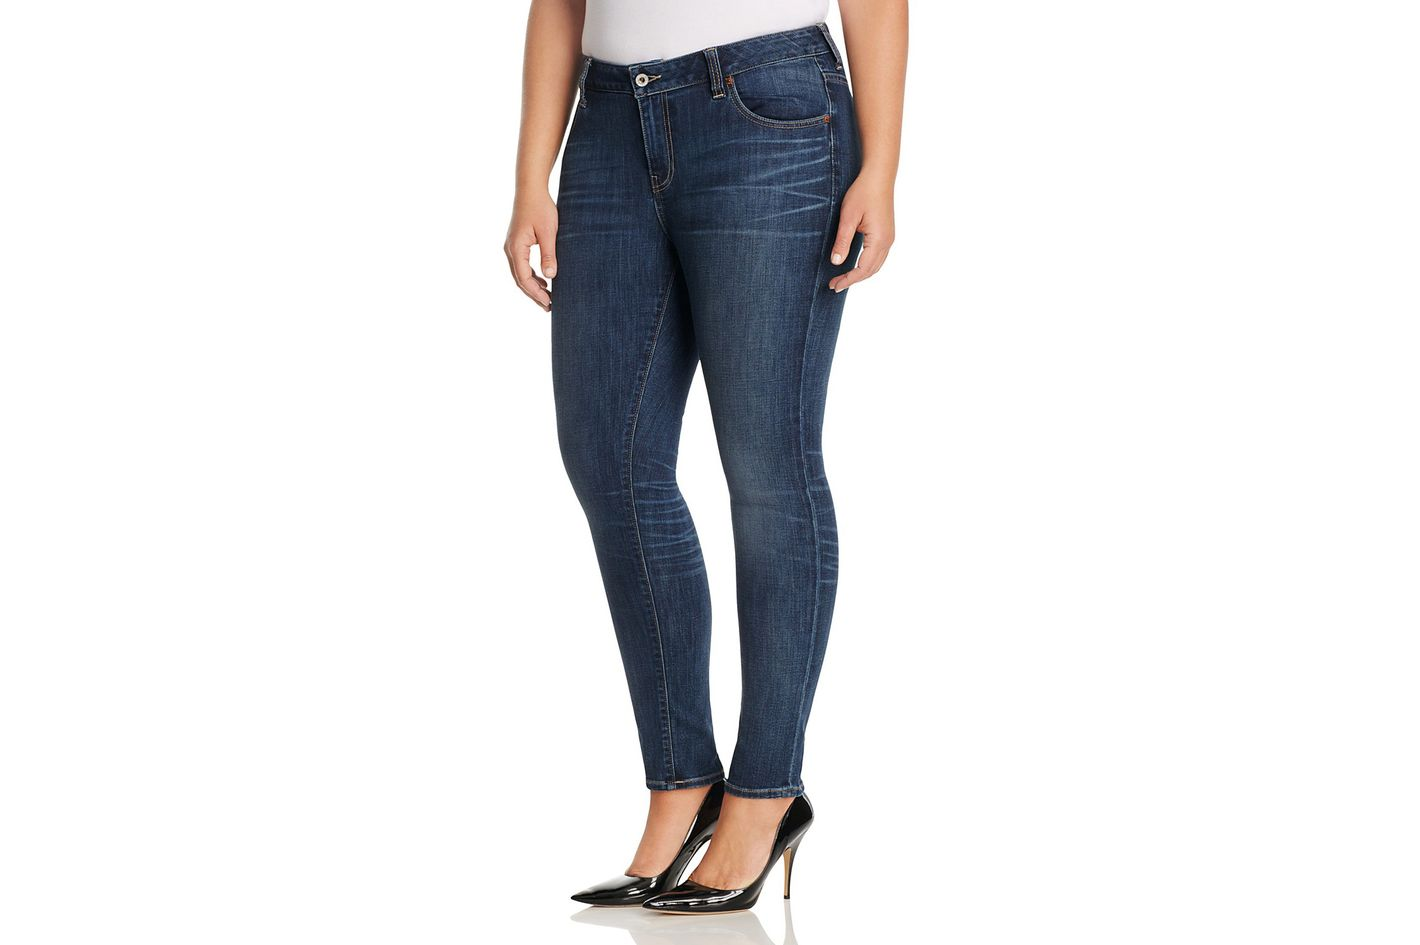 The Absolute Best Jeans for CurvyWomen